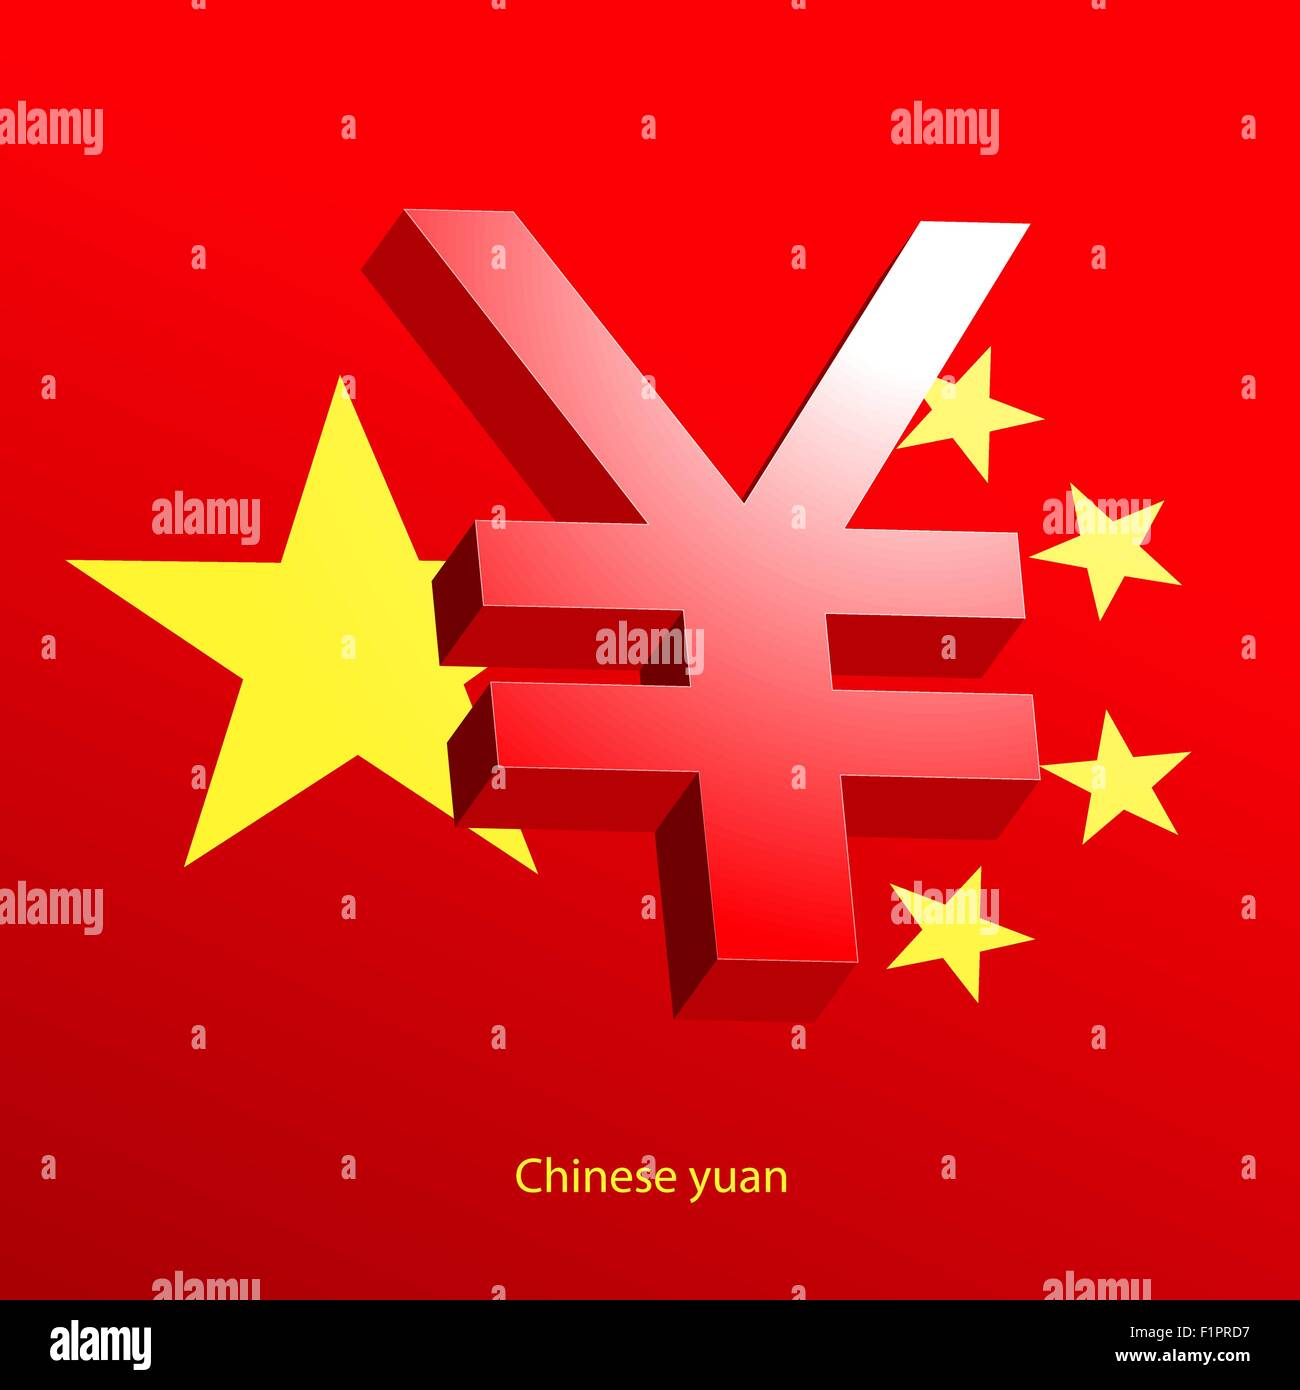 Yuan currency 3d symbol on a red background stock vector art yuan currency 3d symbol on a red background buycottarizona Gallery